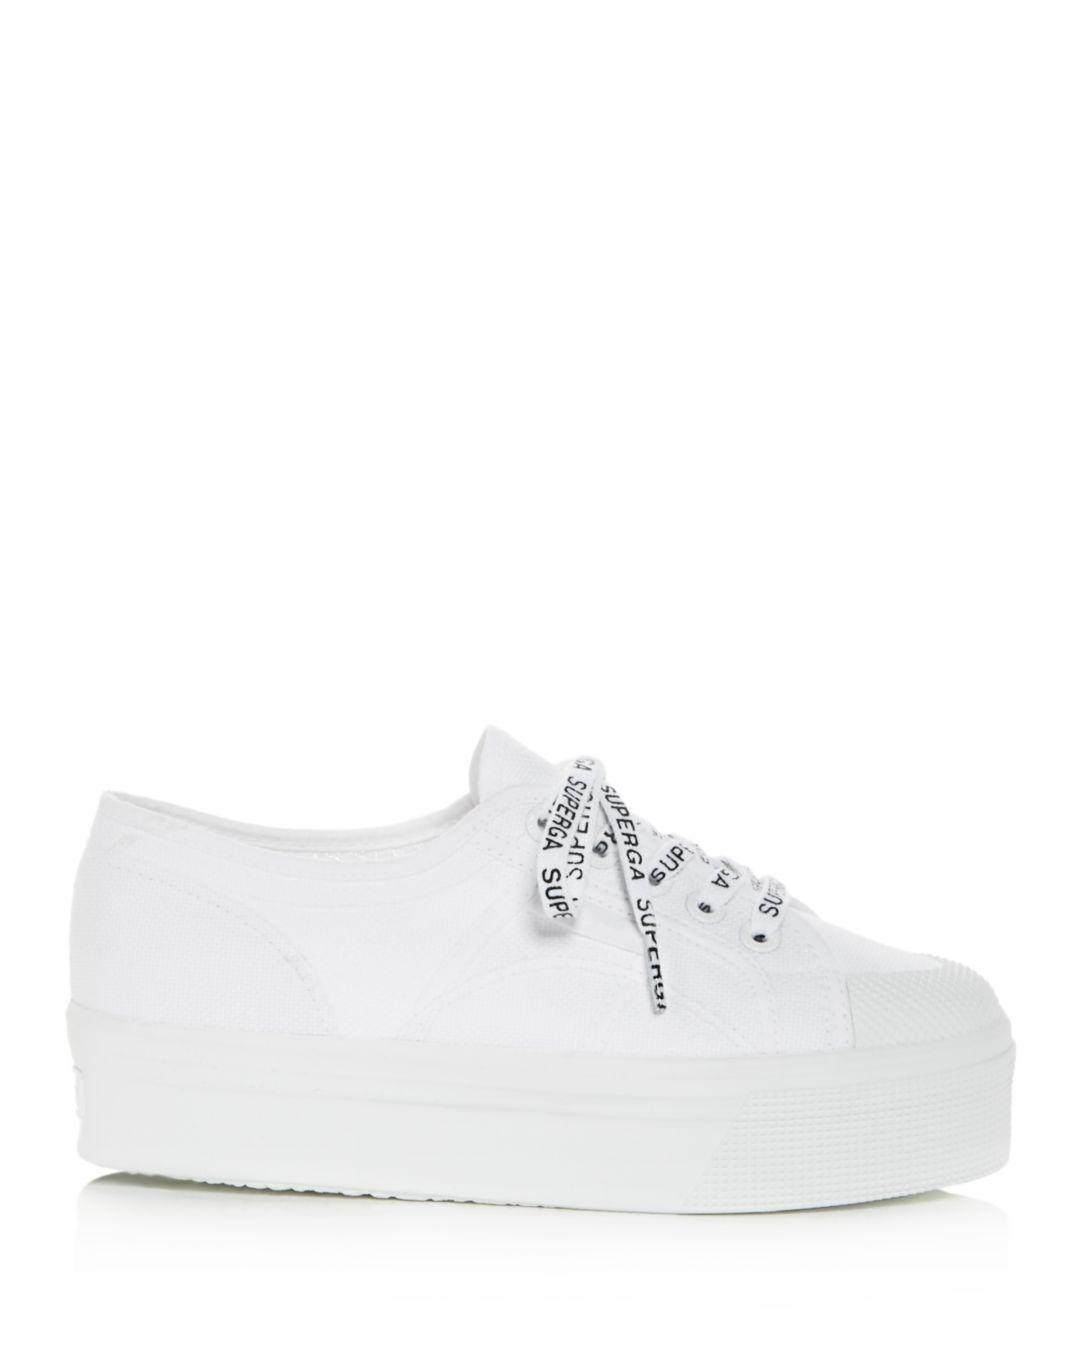 12a95708e9af Lyst - Superga Women s Cotu Classic Low-top Platform Sneakers in White